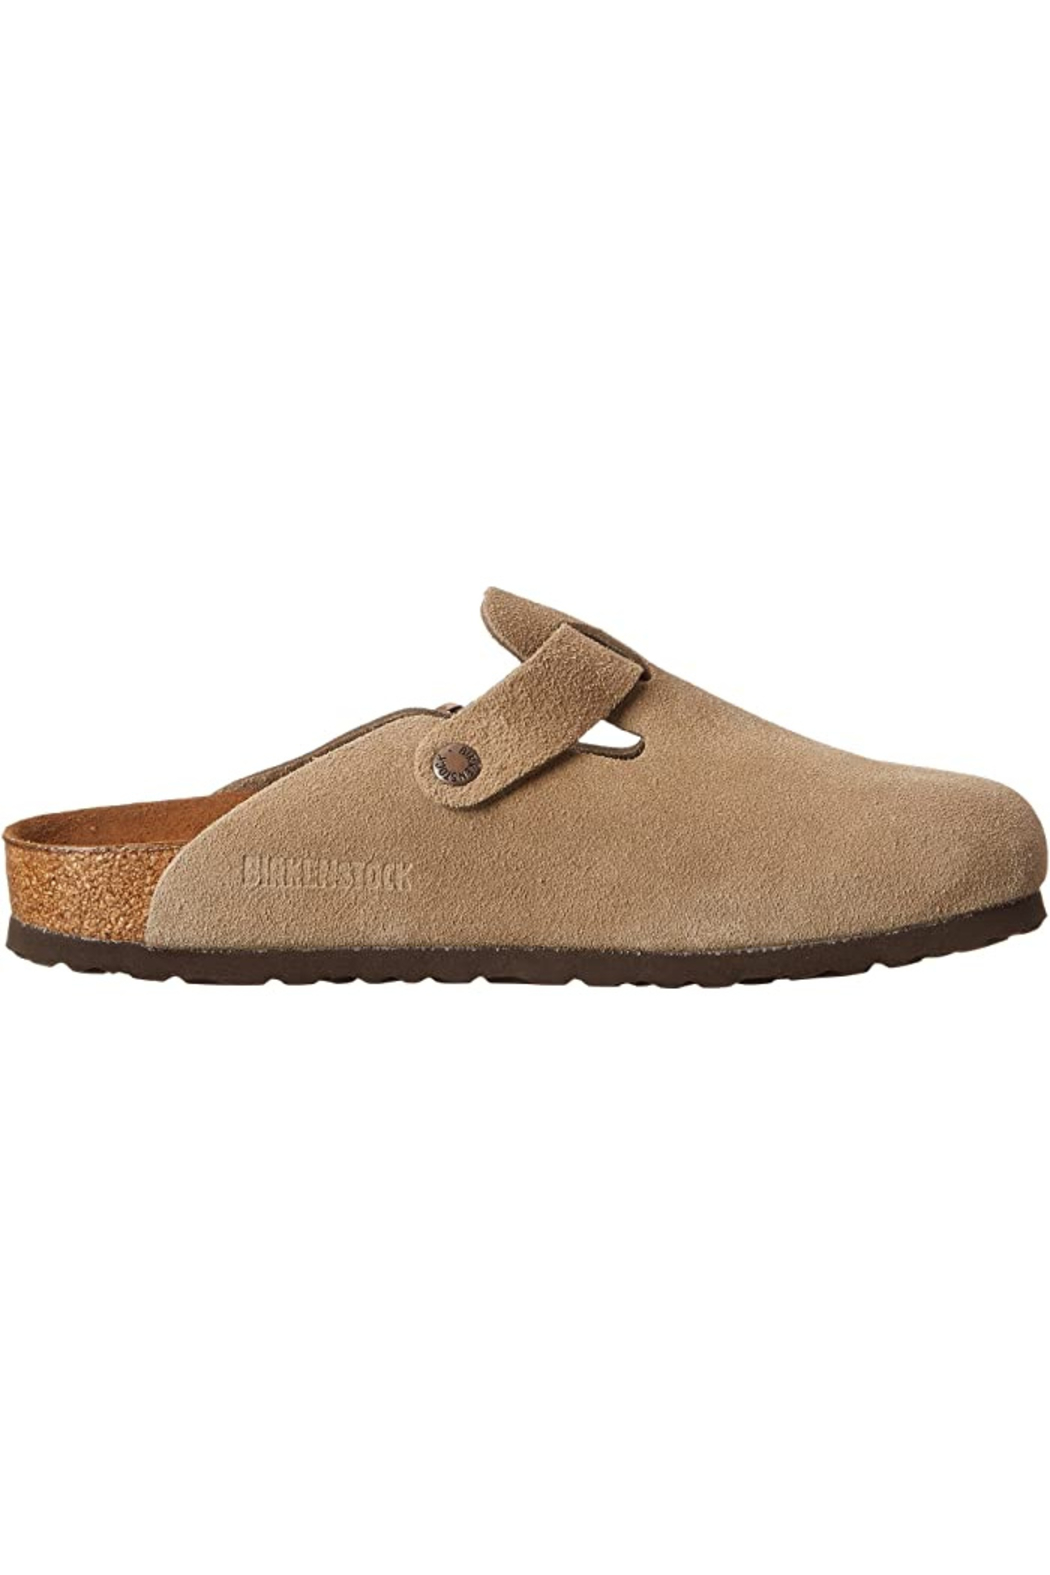 Birkenstock Boston Taupe Suede Narrow Hard Footbed - Main Image